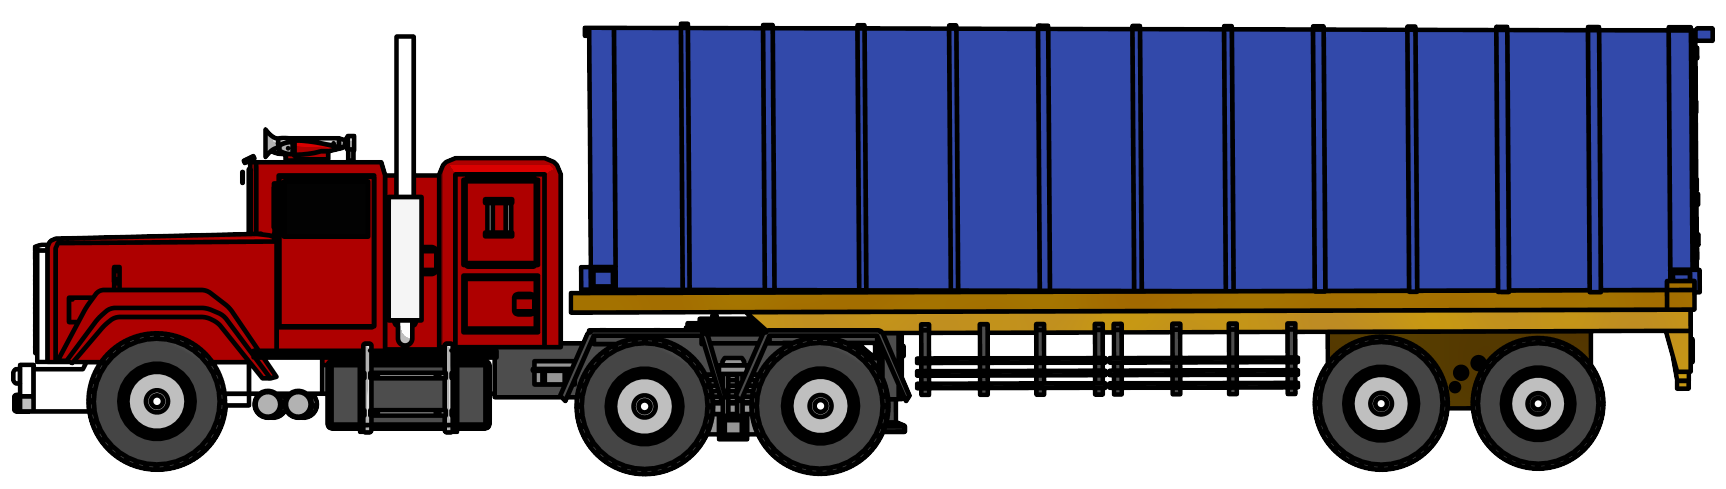 1726x489 Industrial Truck Big Truck Clipart Png Image Side View